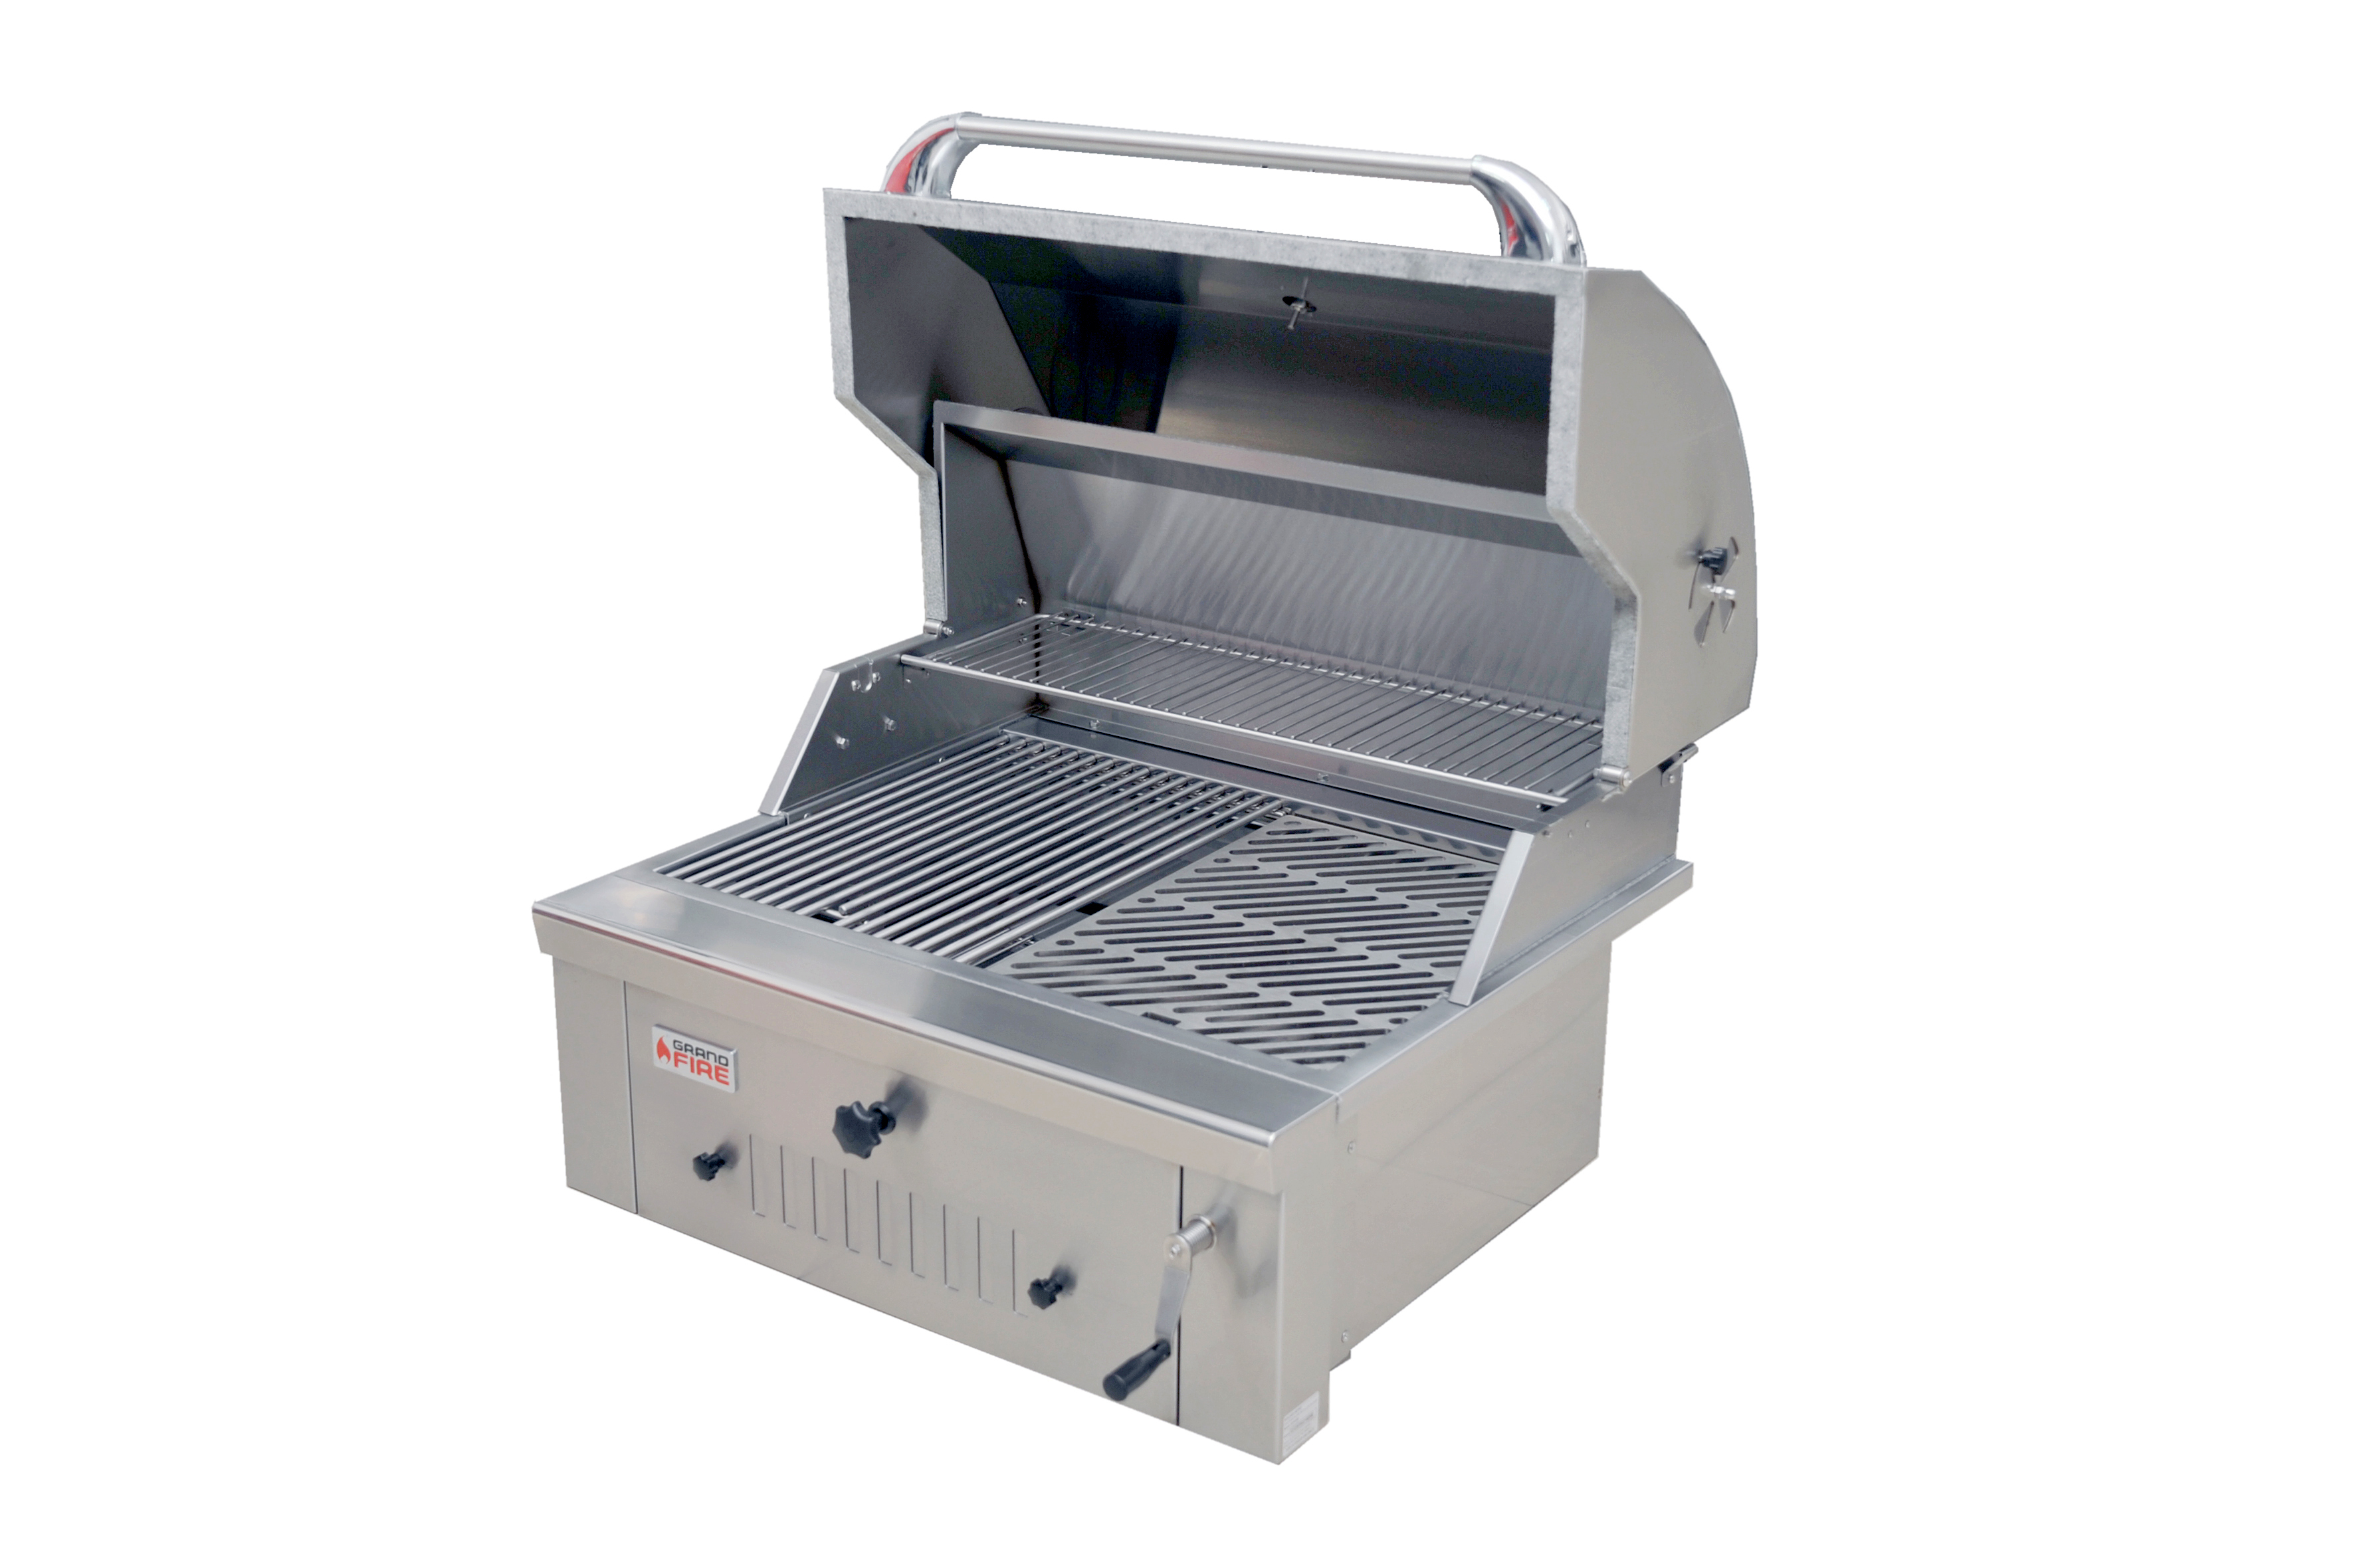 Grandfire Built-in Deluxe Series Charcoal BBQ